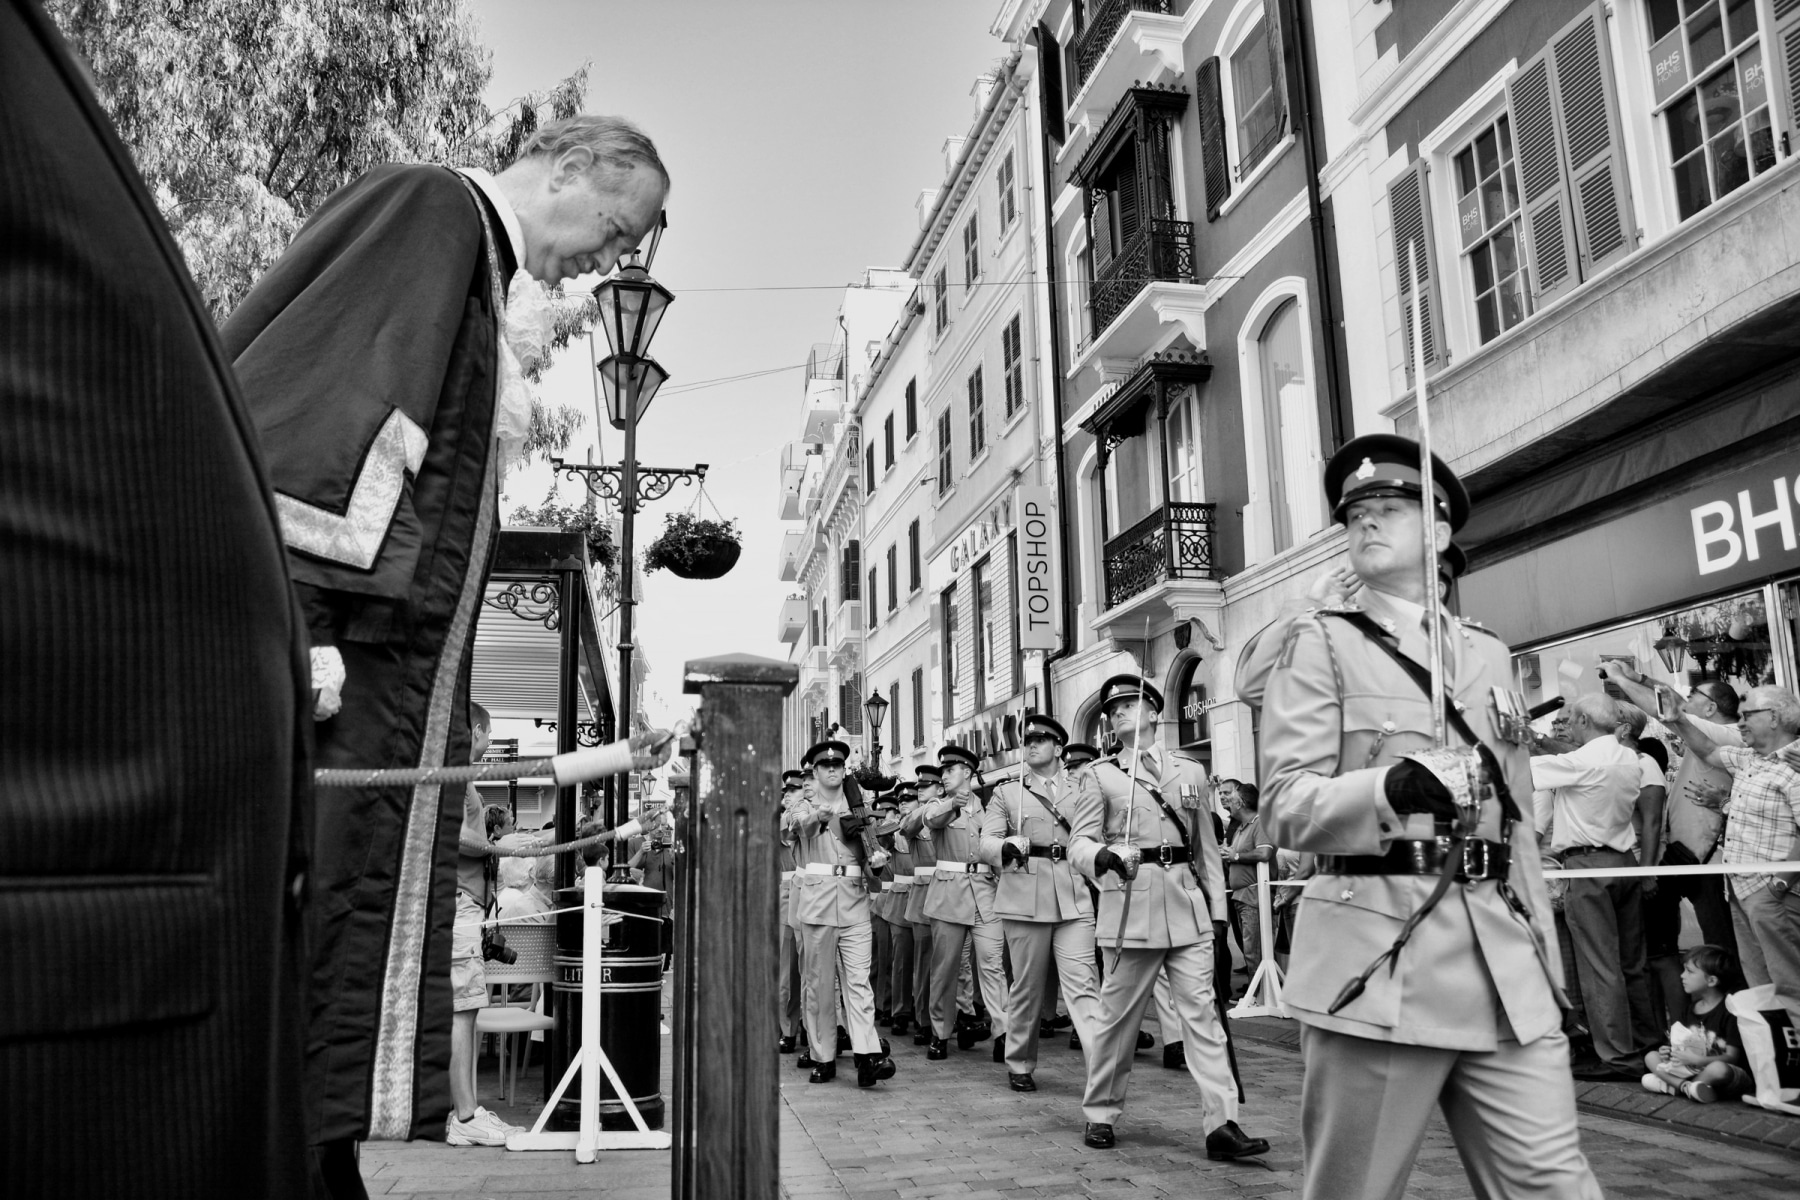 regiment-freedom-of-city-0174-bw_15436772281_o